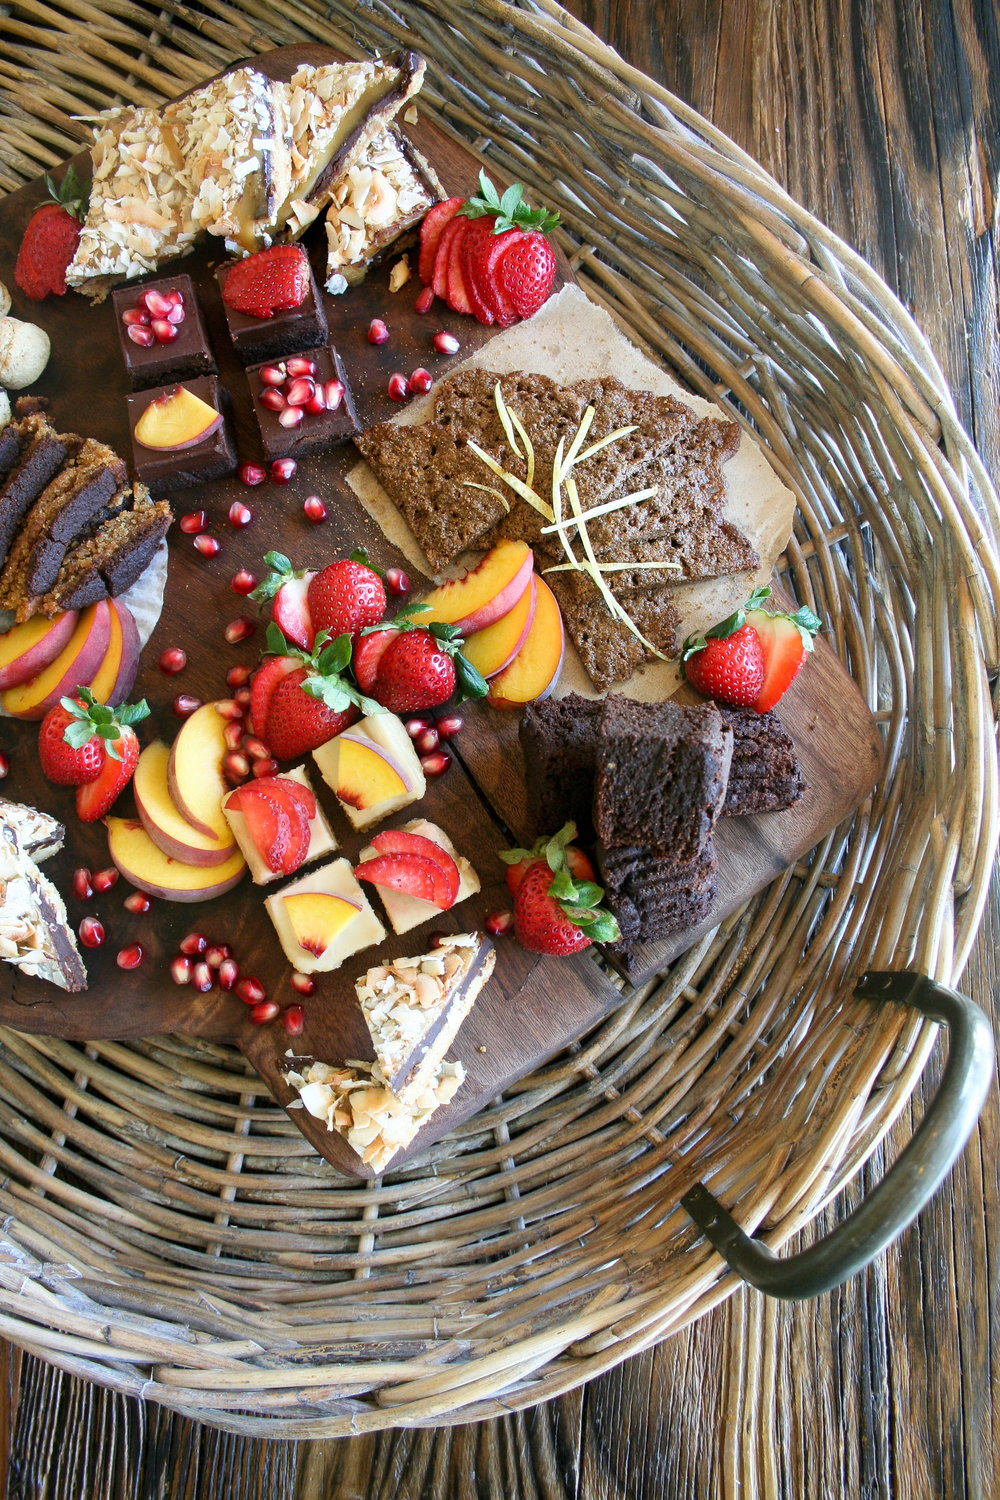 a top-down photo showing a sampling of the catering dessert service from Fresh Thymes Marketplace Catering. On the right is a three-tiered silver tray piled with small bites of brownies, bars, and cookies. On the left are two wooden boards line with large square brownies on one and fruit cheesecakes on the other.